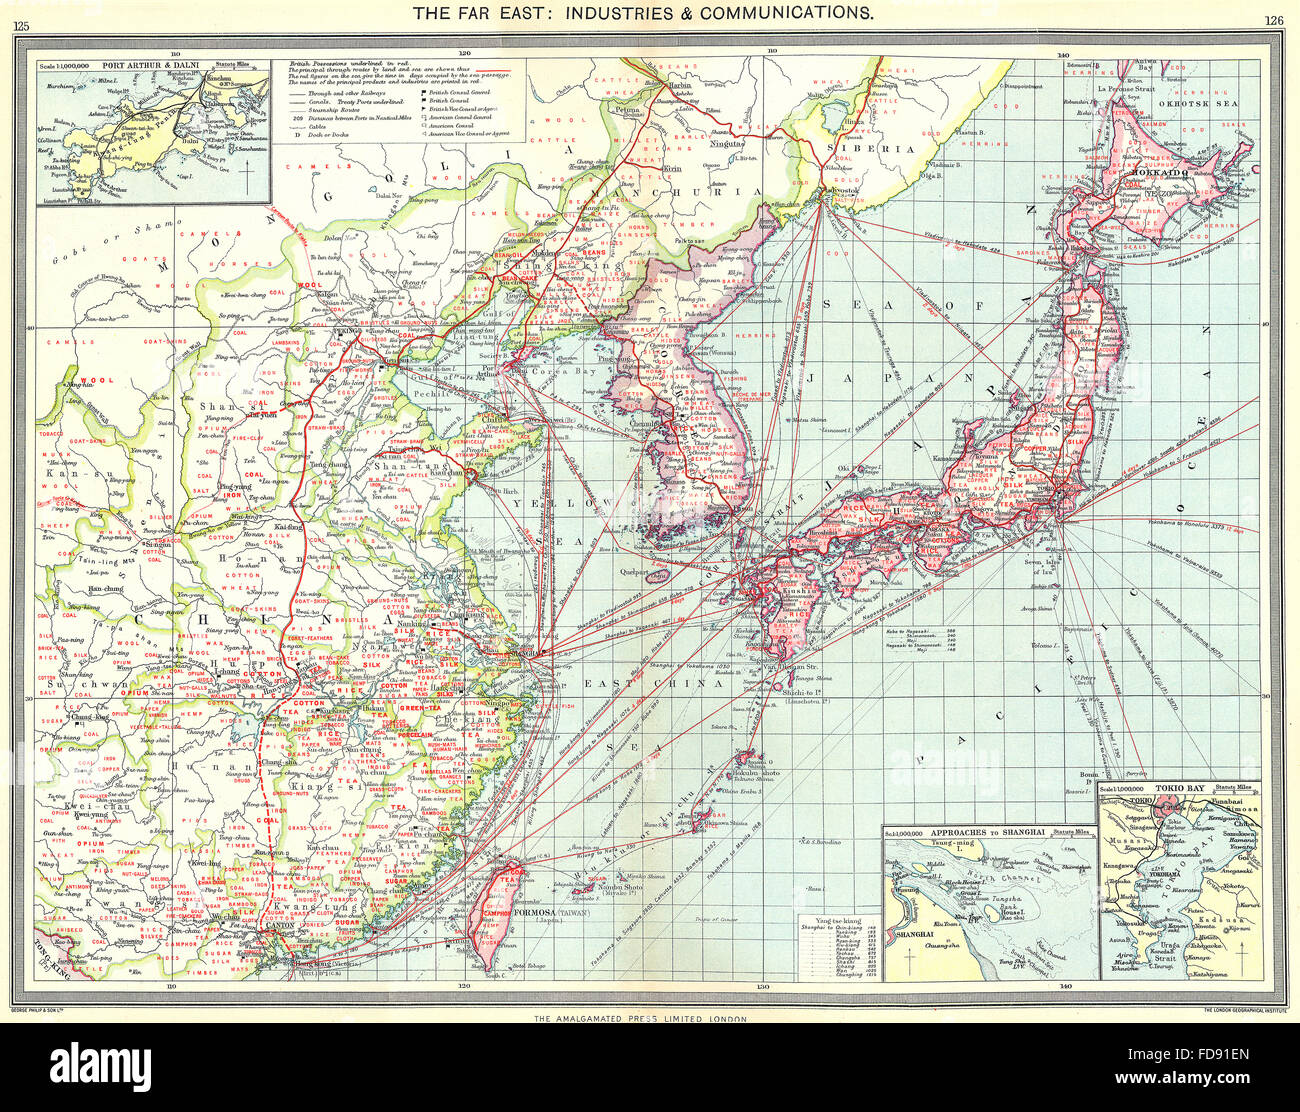 Japan korea china taiwan industry communications tokyo port stock japan korea china taiwan industry communications tokyo port arthur 1907 map gumiabroncs